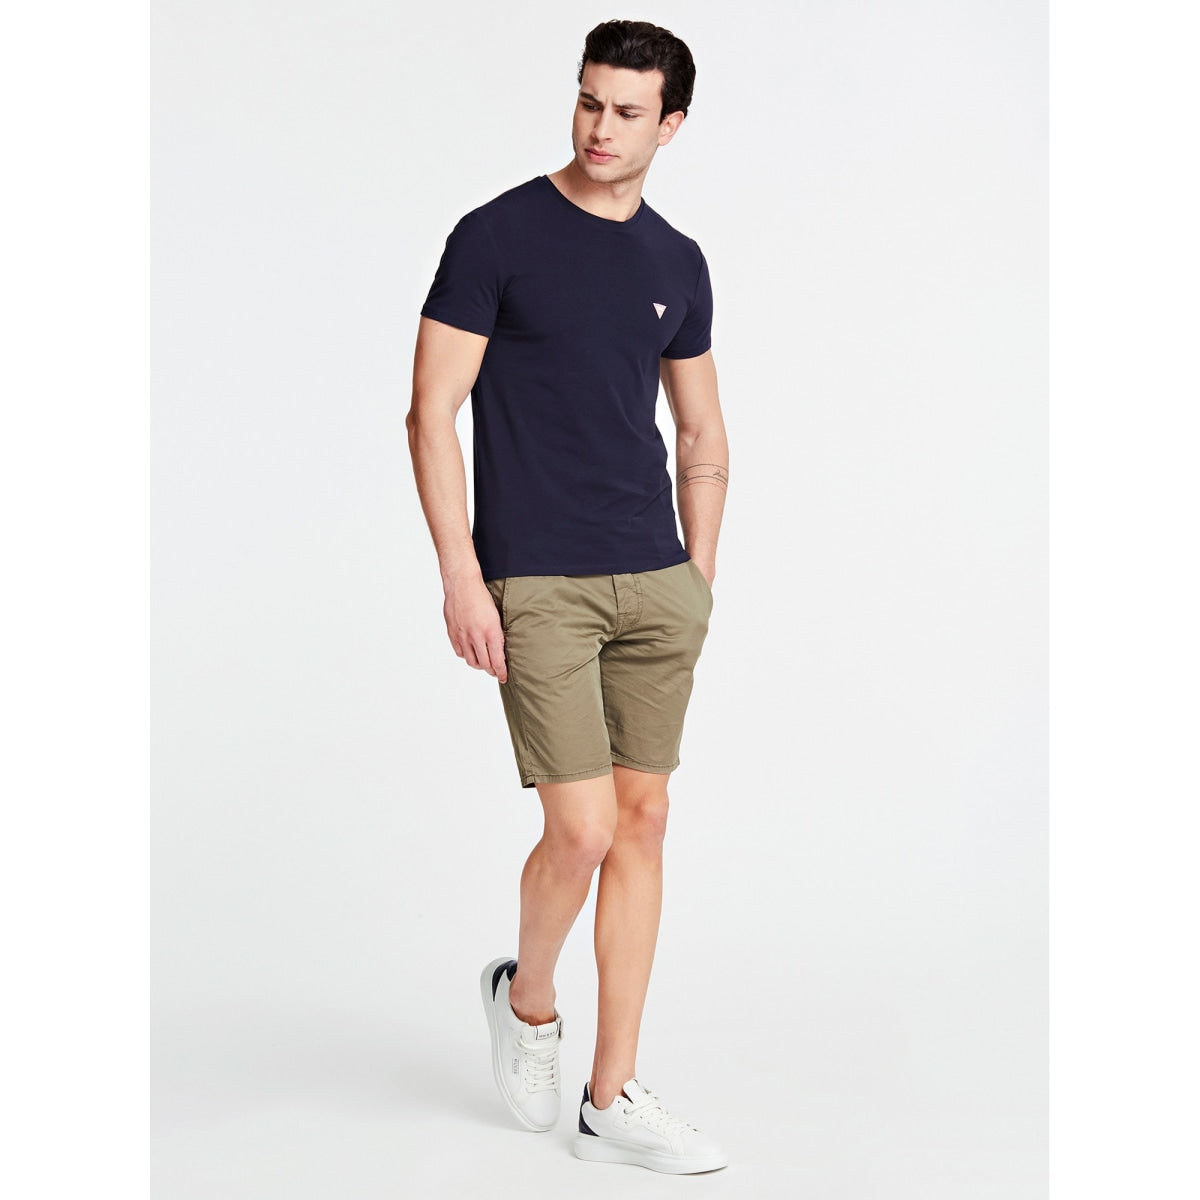 GUESS T-Shirt Slim Fit rundhals dunkelblau